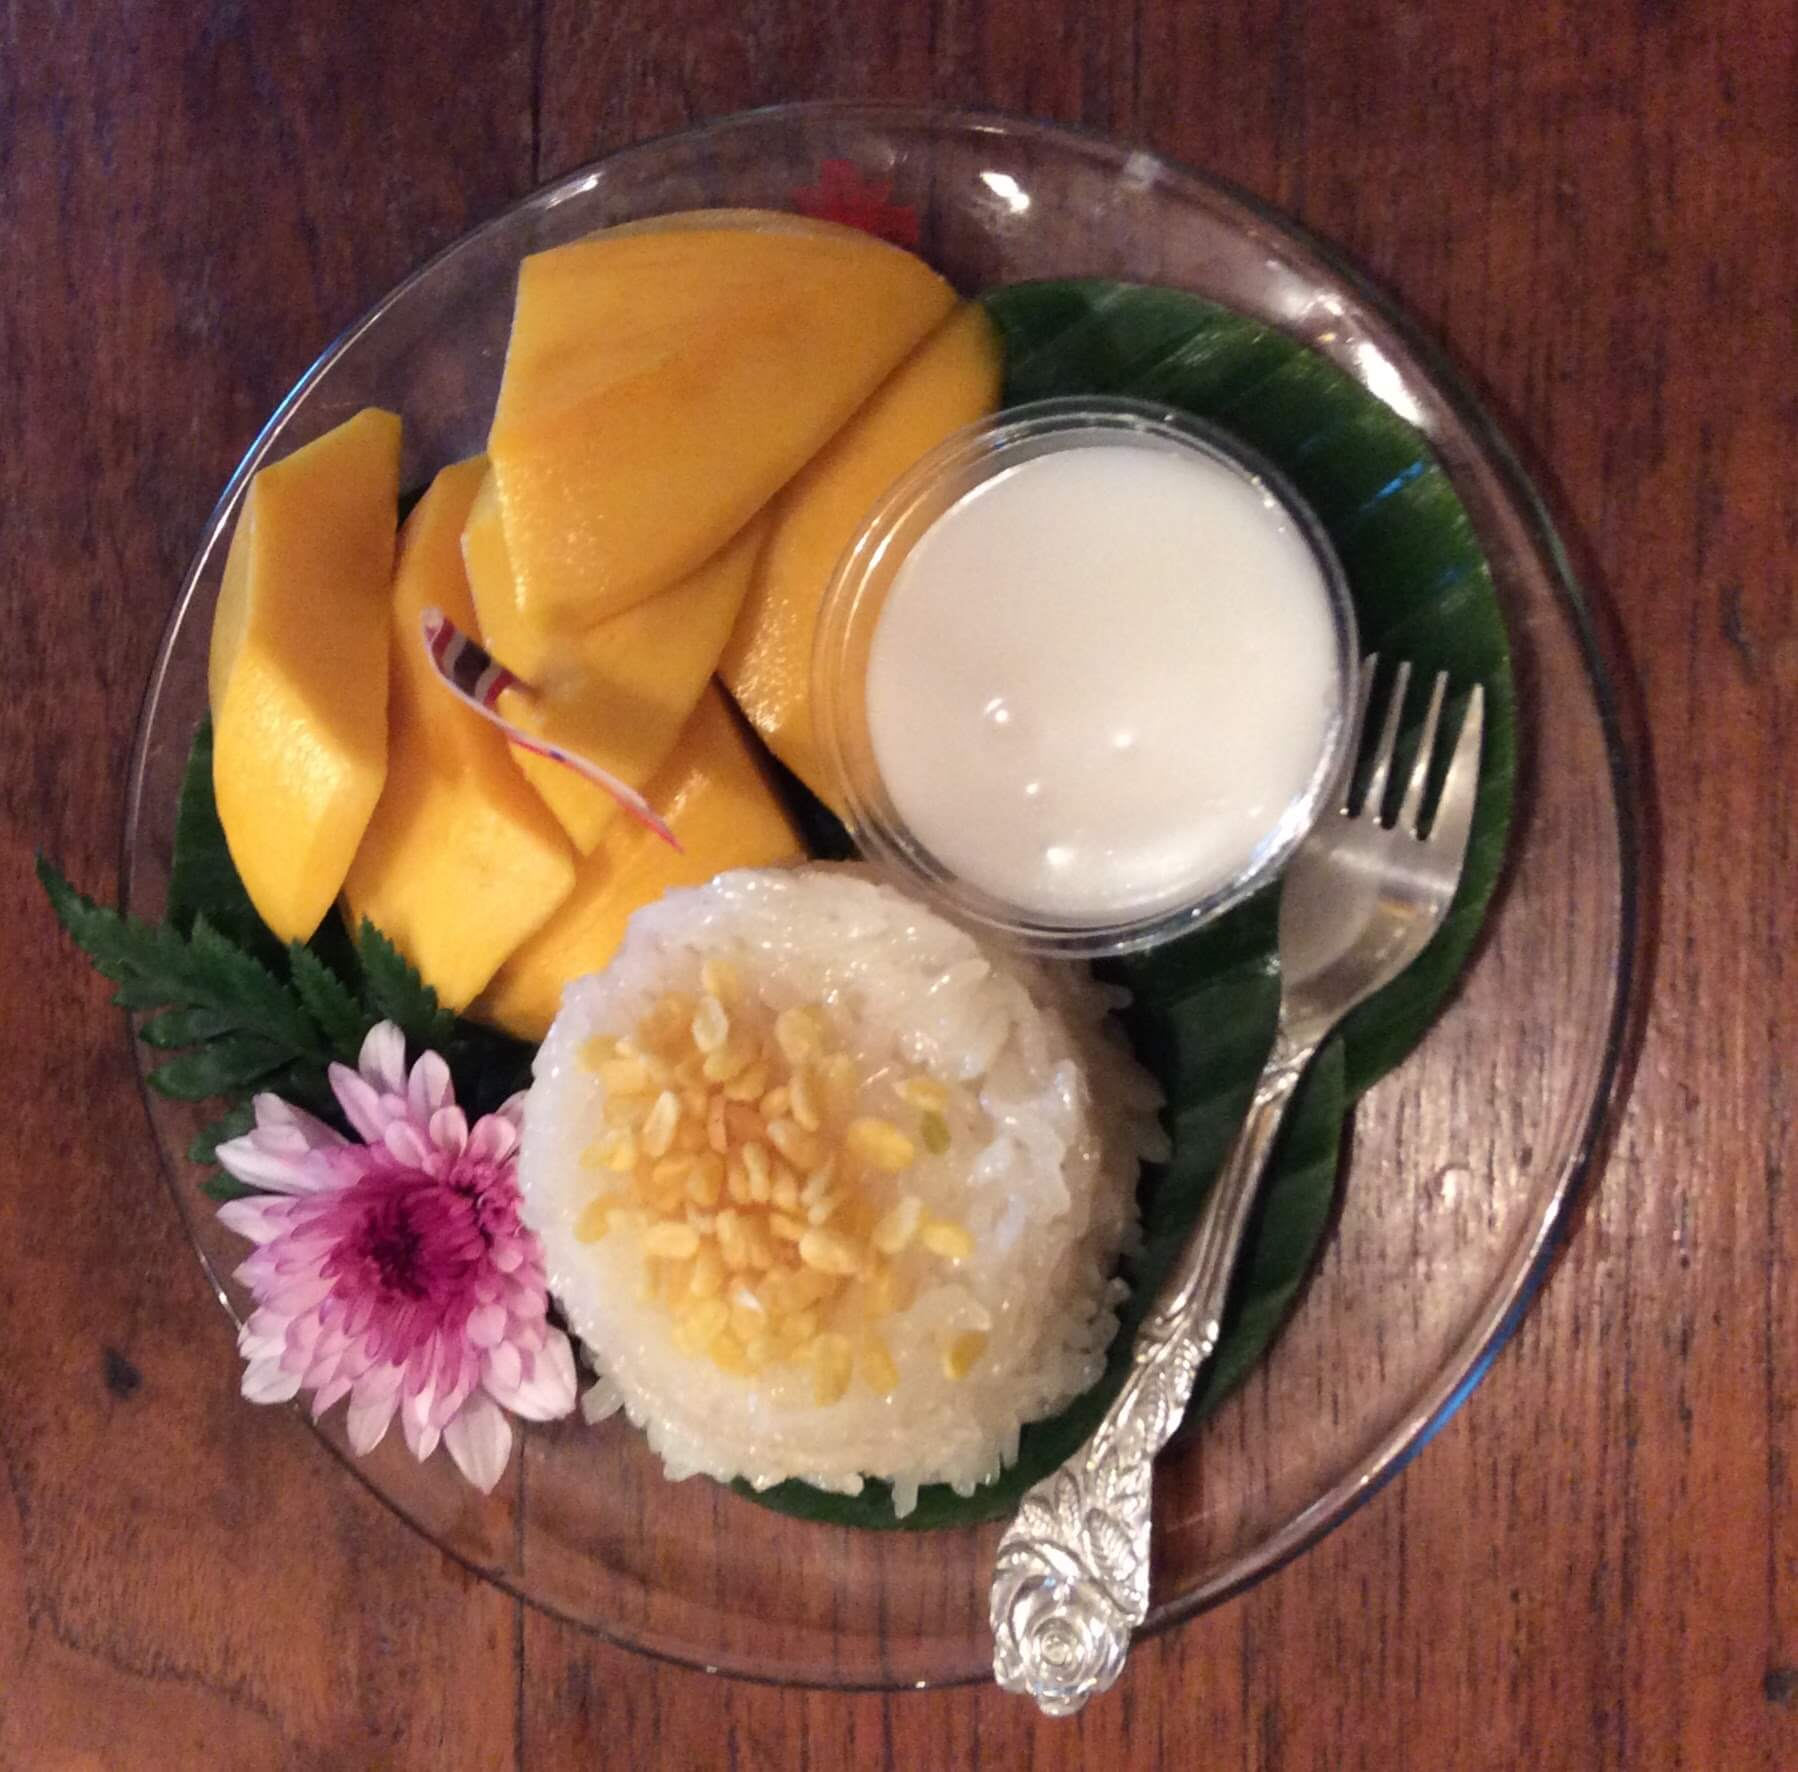 Things to do in Bangkok - sticky rice with mango